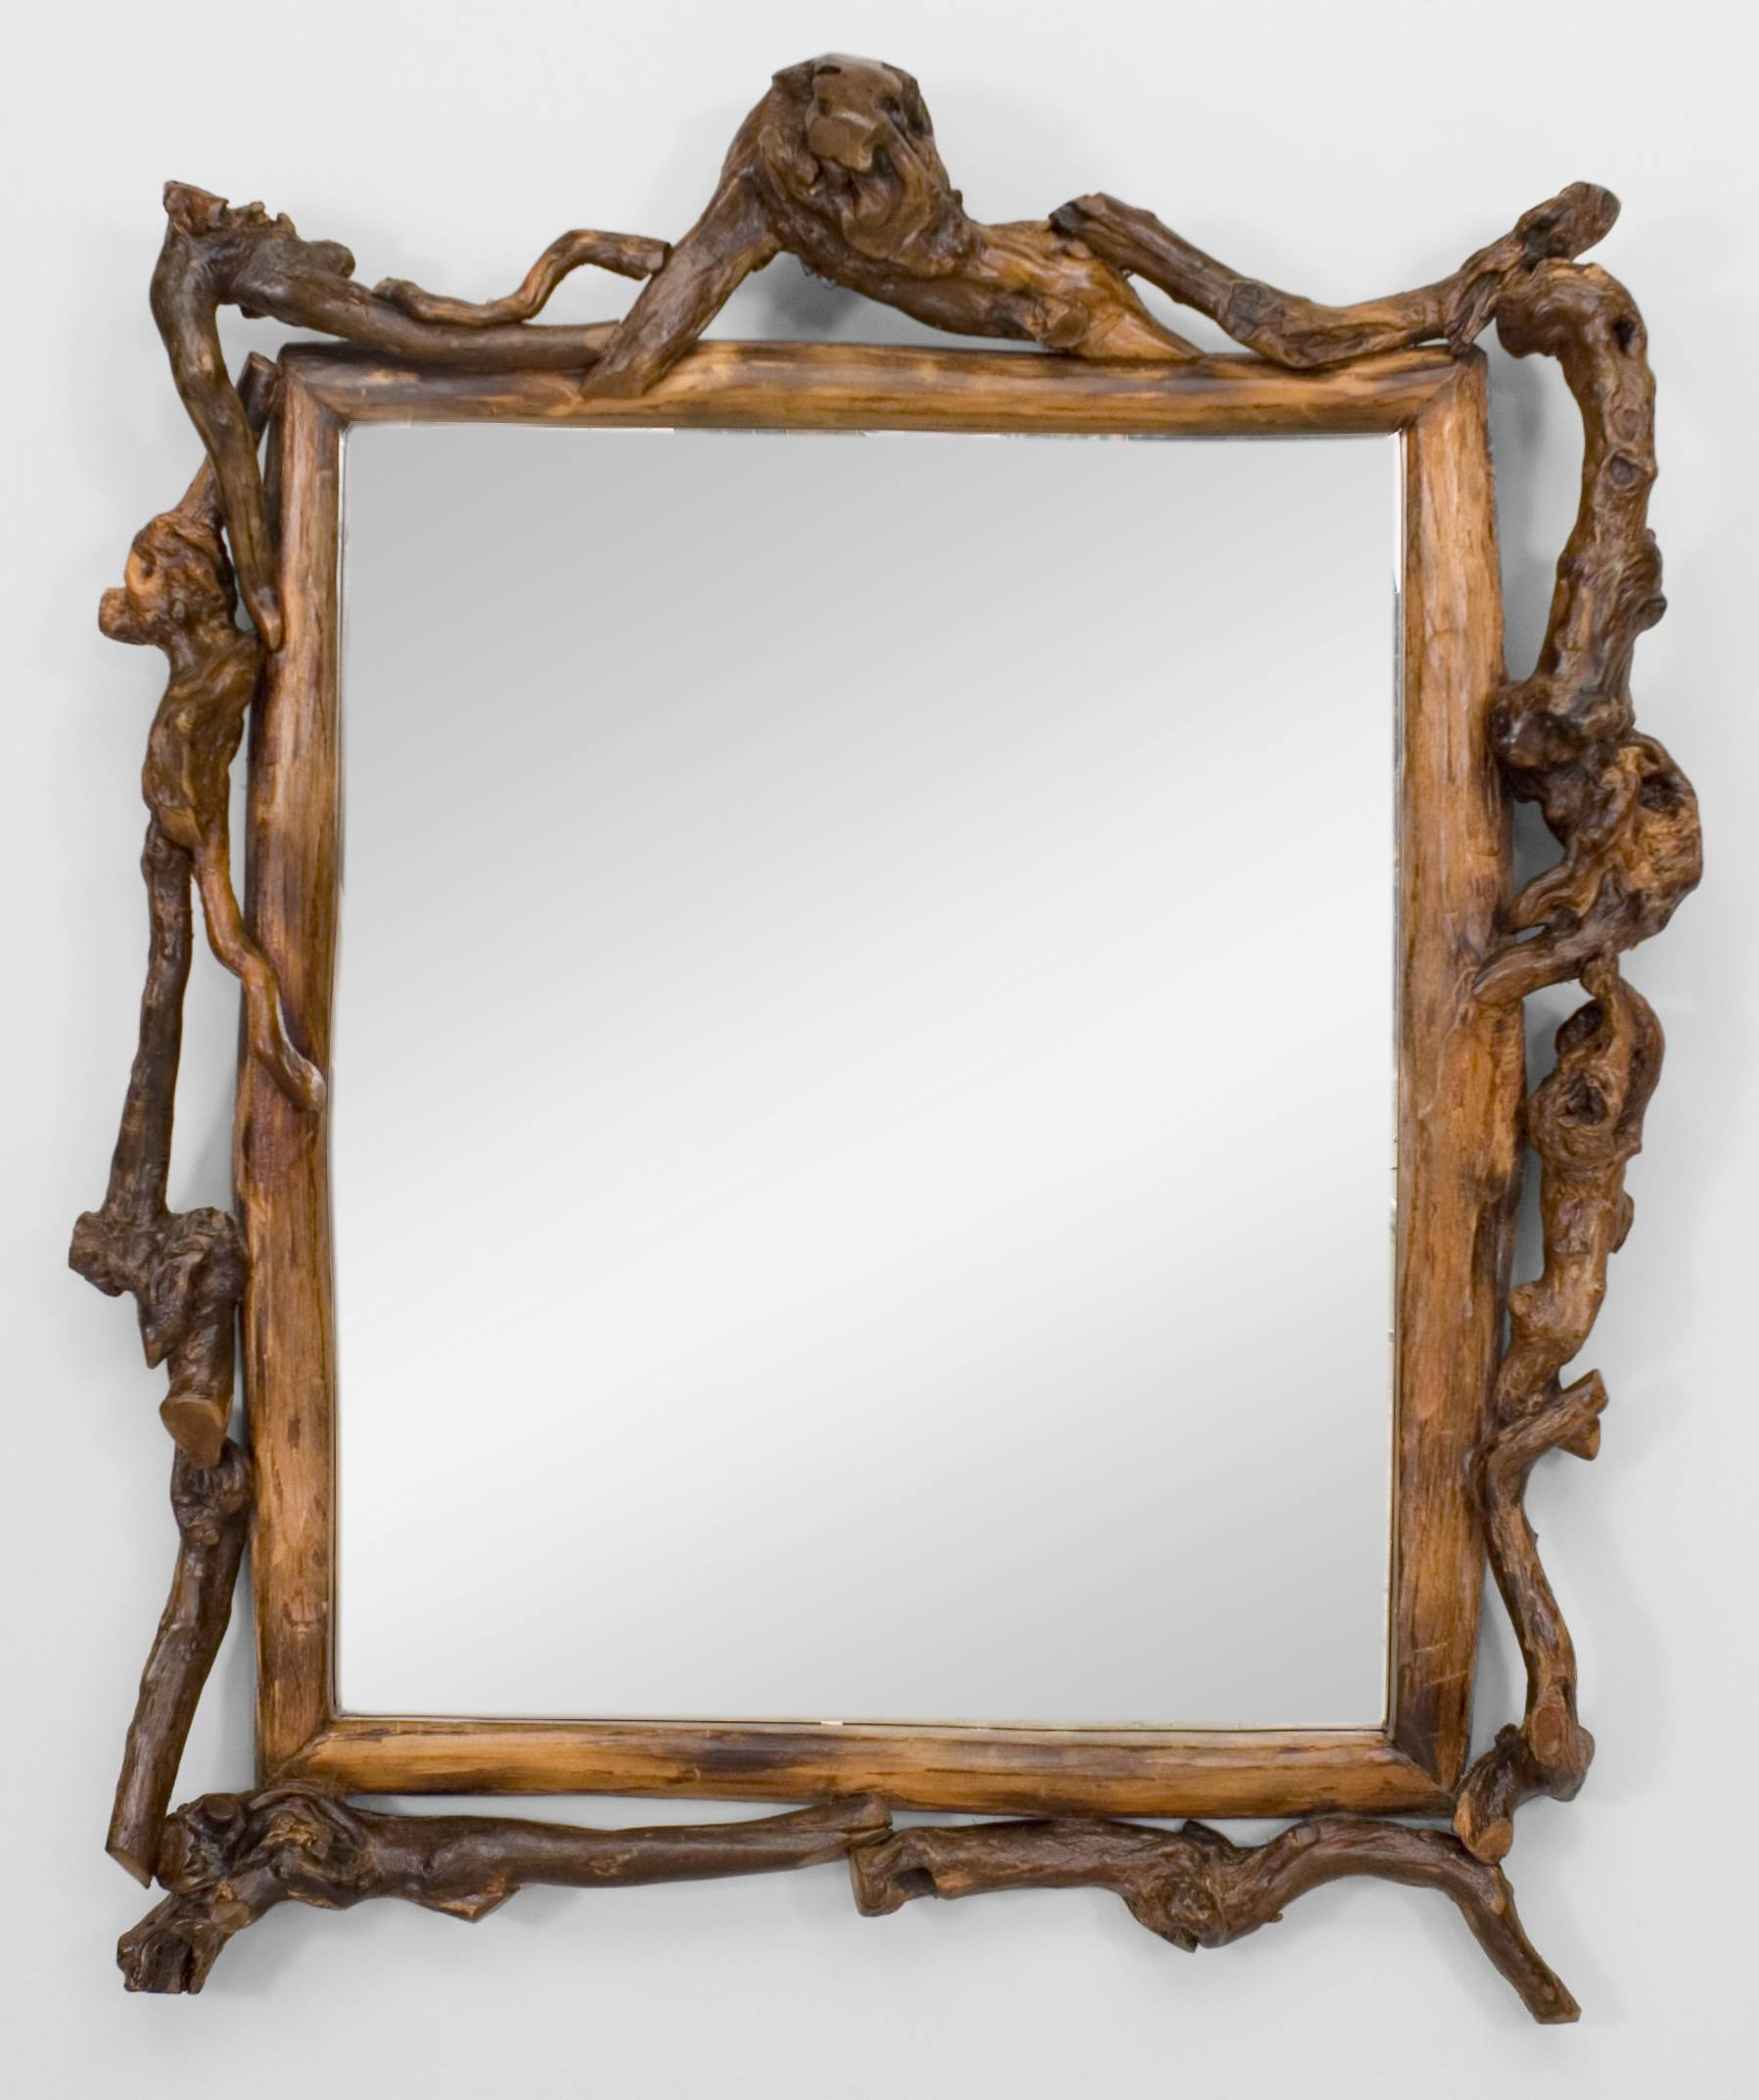 Bathroom : Rustic Bathroom Mirror With Unusual Frame Design inside Unusual Mirrors (Image 7 of 25)